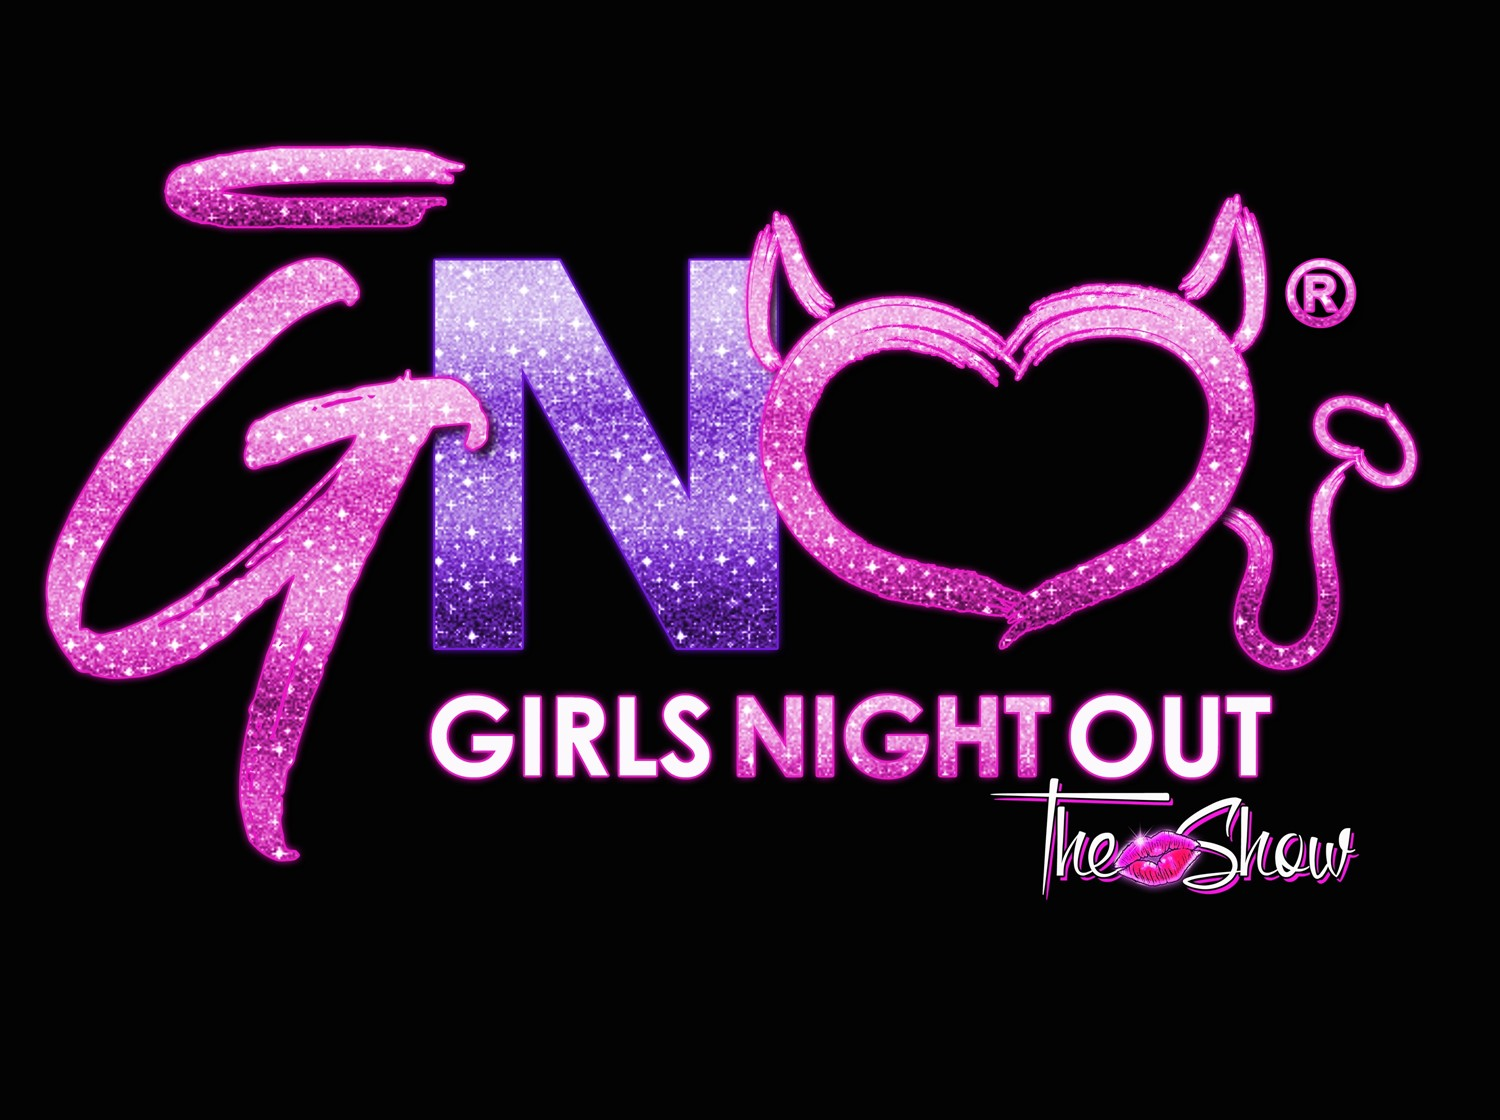 PJ's Music Box (21+) Yakima, WA on Aug 24, 20:00@PJ's Music Box - Buy tickets and Get information on Girls Night Out the Show tickets.girlsnightouttheshow.com